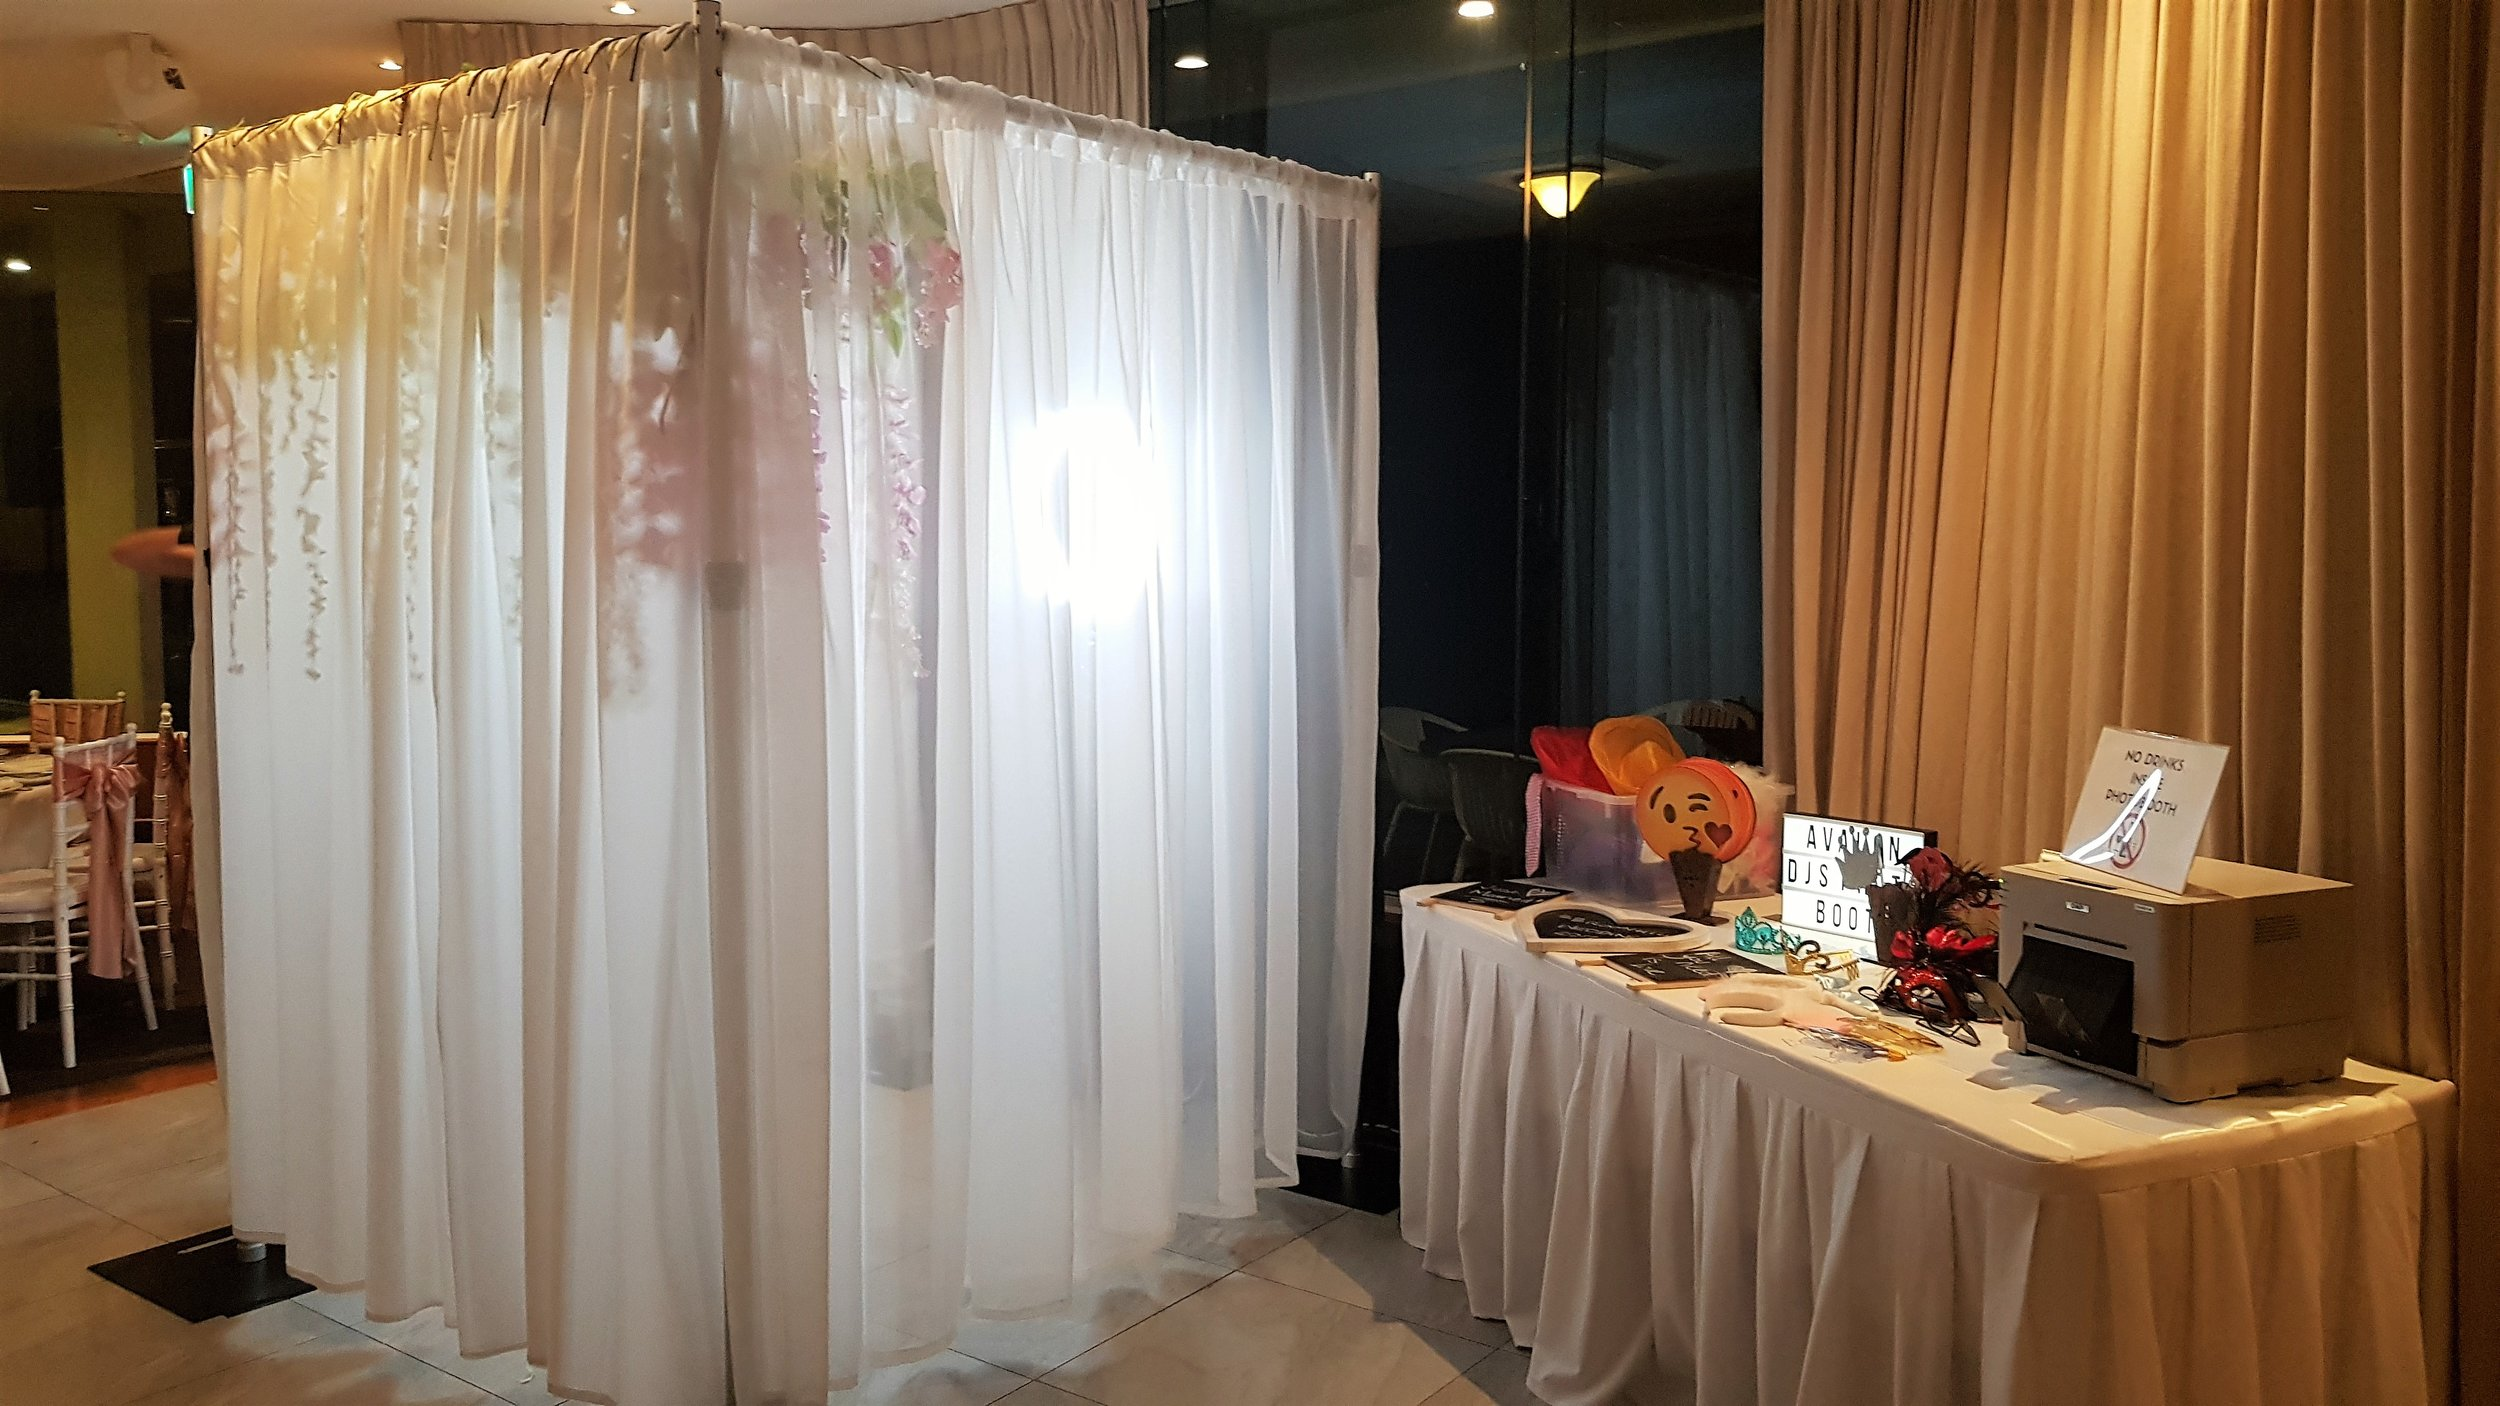 Avalon DJs Wedding Photobooth w/ Flower Backdrop